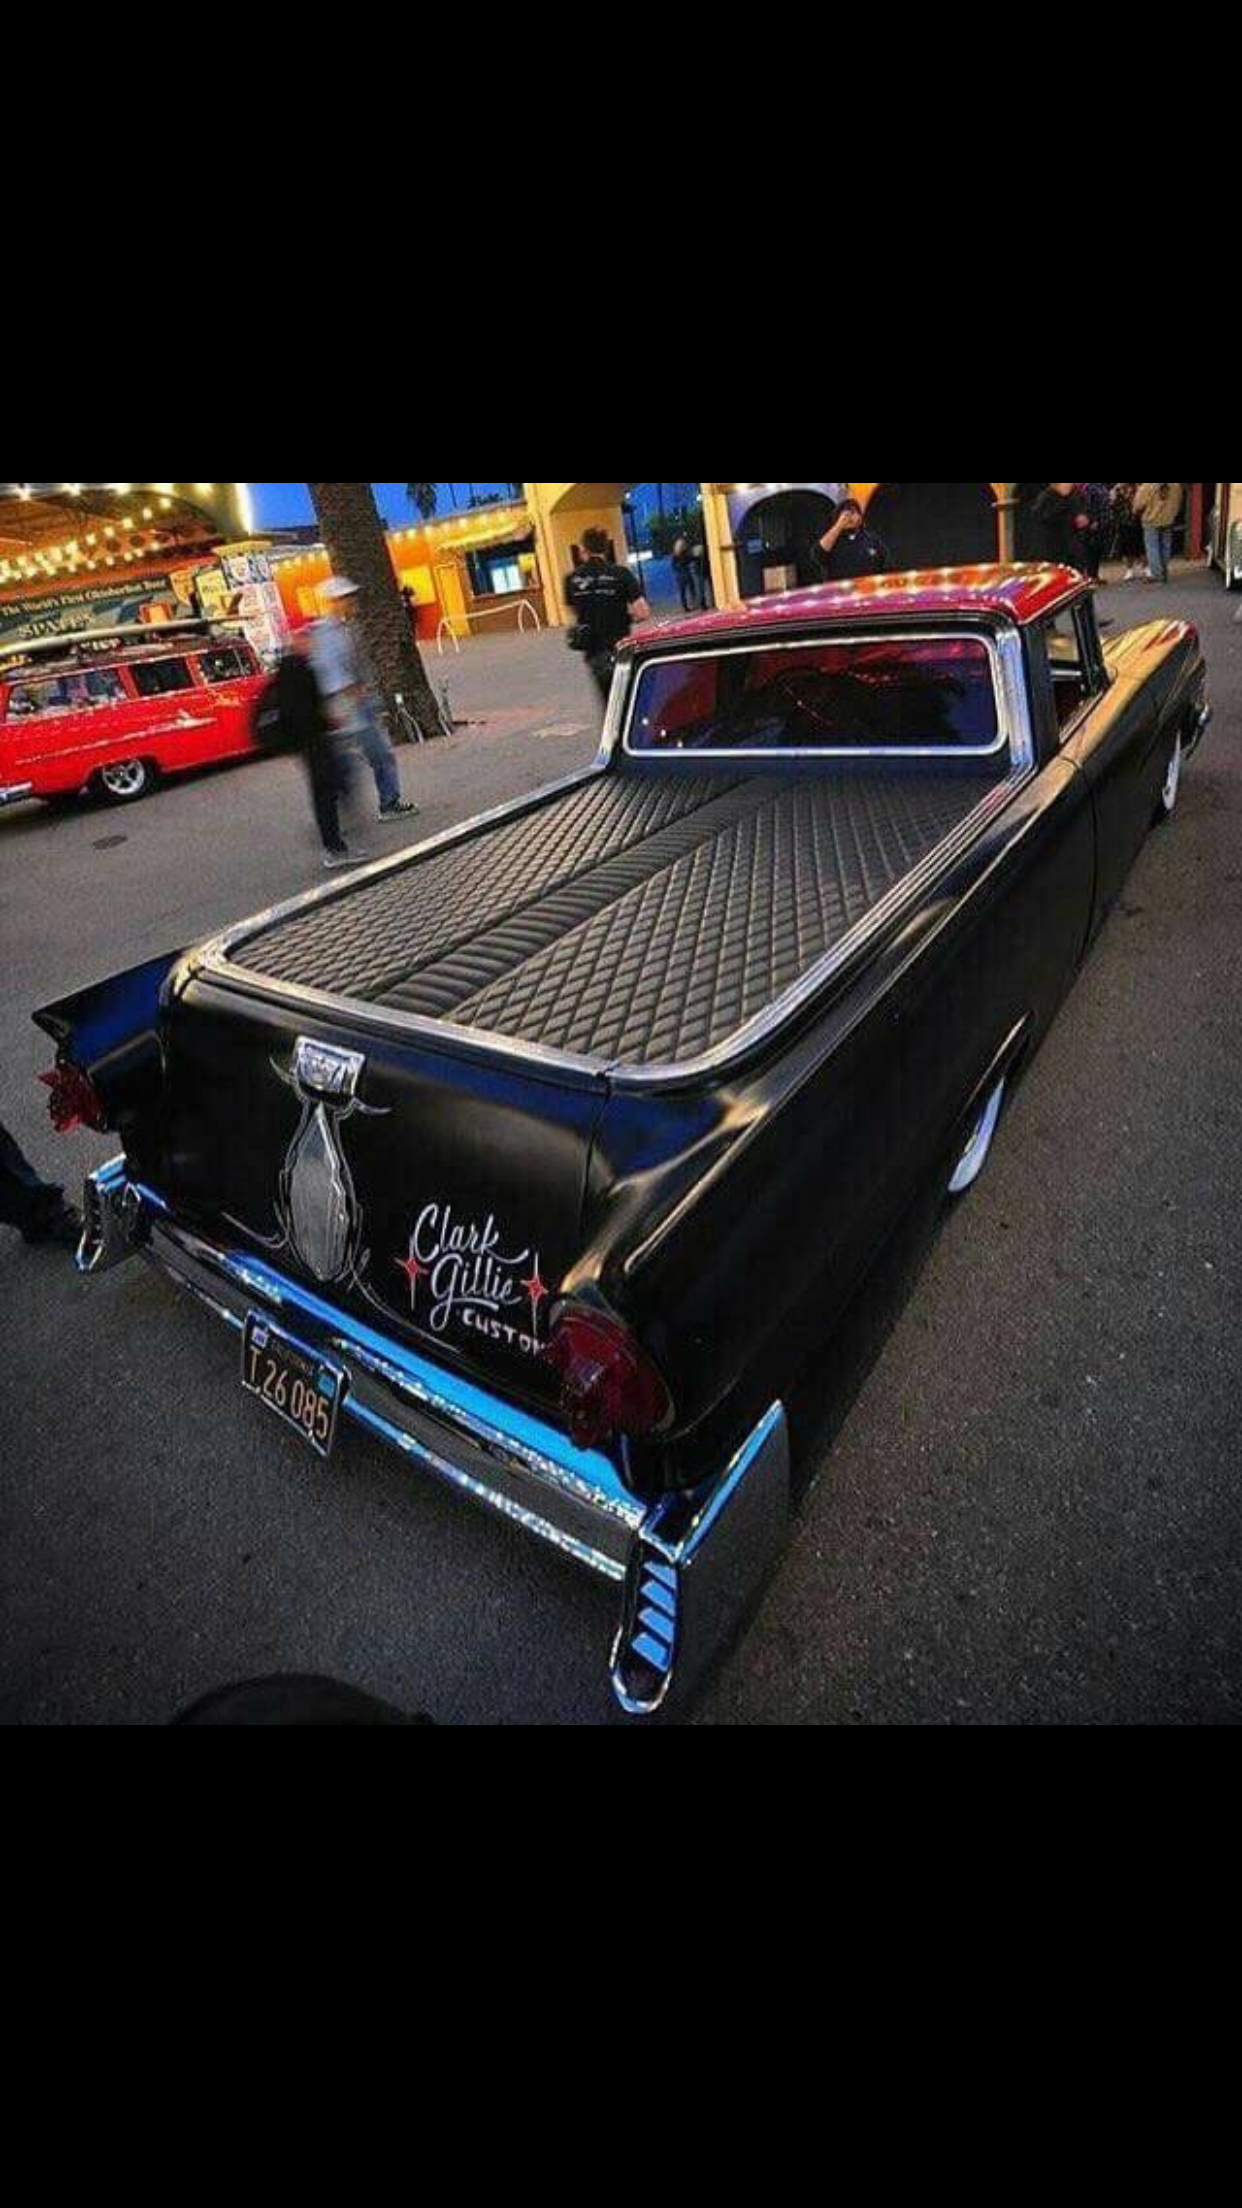 Pin By Ronald Farrell On Elky El Camino Trucks Cars 1957 Chevrolet Ss Chevy Hot Rods Driveways